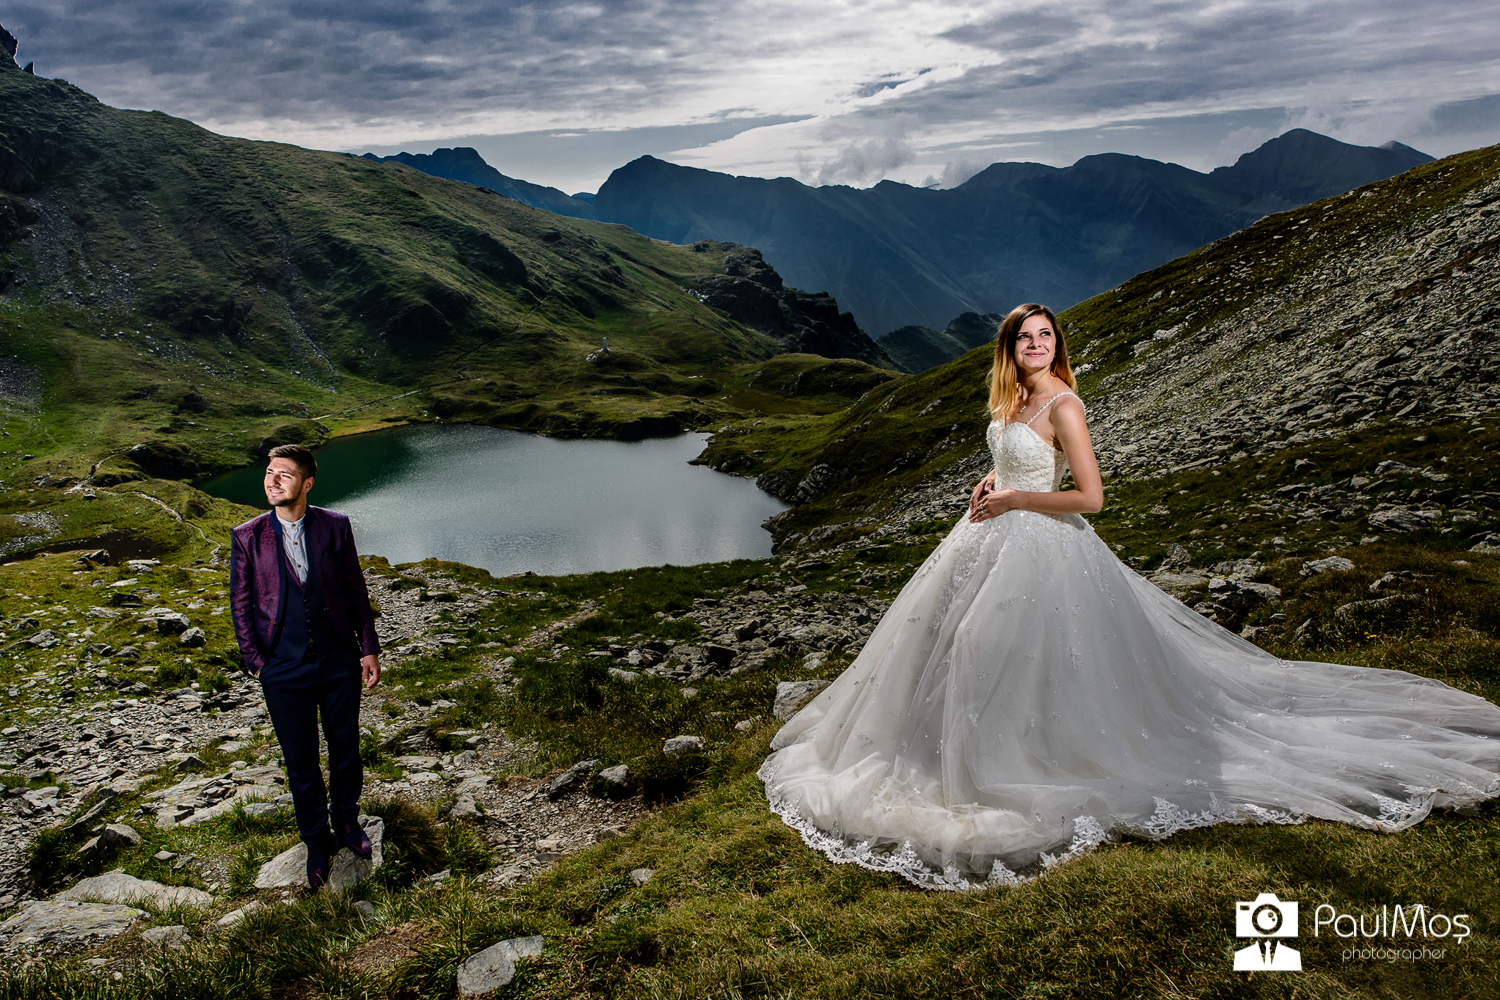 Sedinta Foto - Trash the dress - Transfagarasan